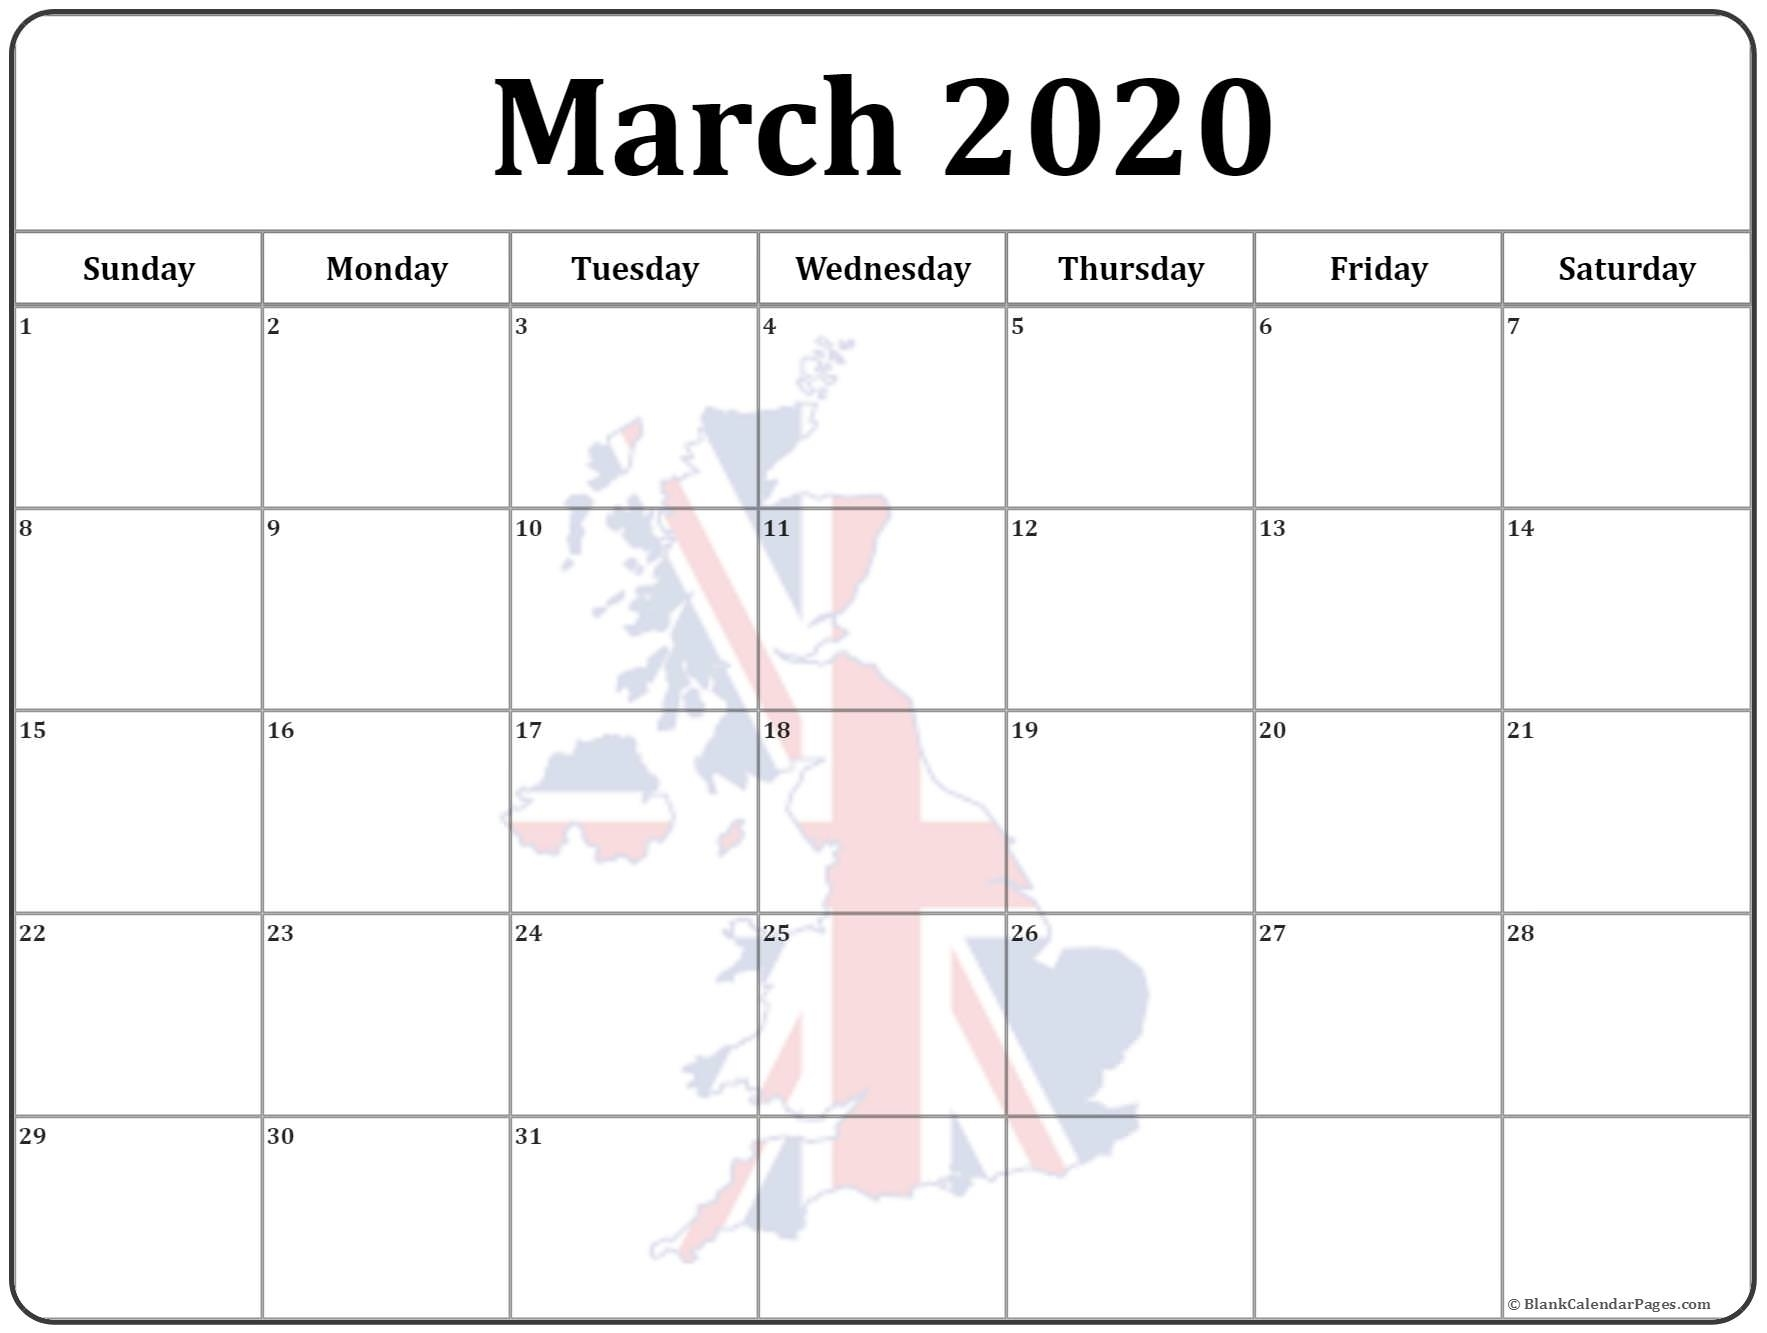 15+ March 2020 Printable Photo Calendars With Image Filters. March 2020 Calendar Uk